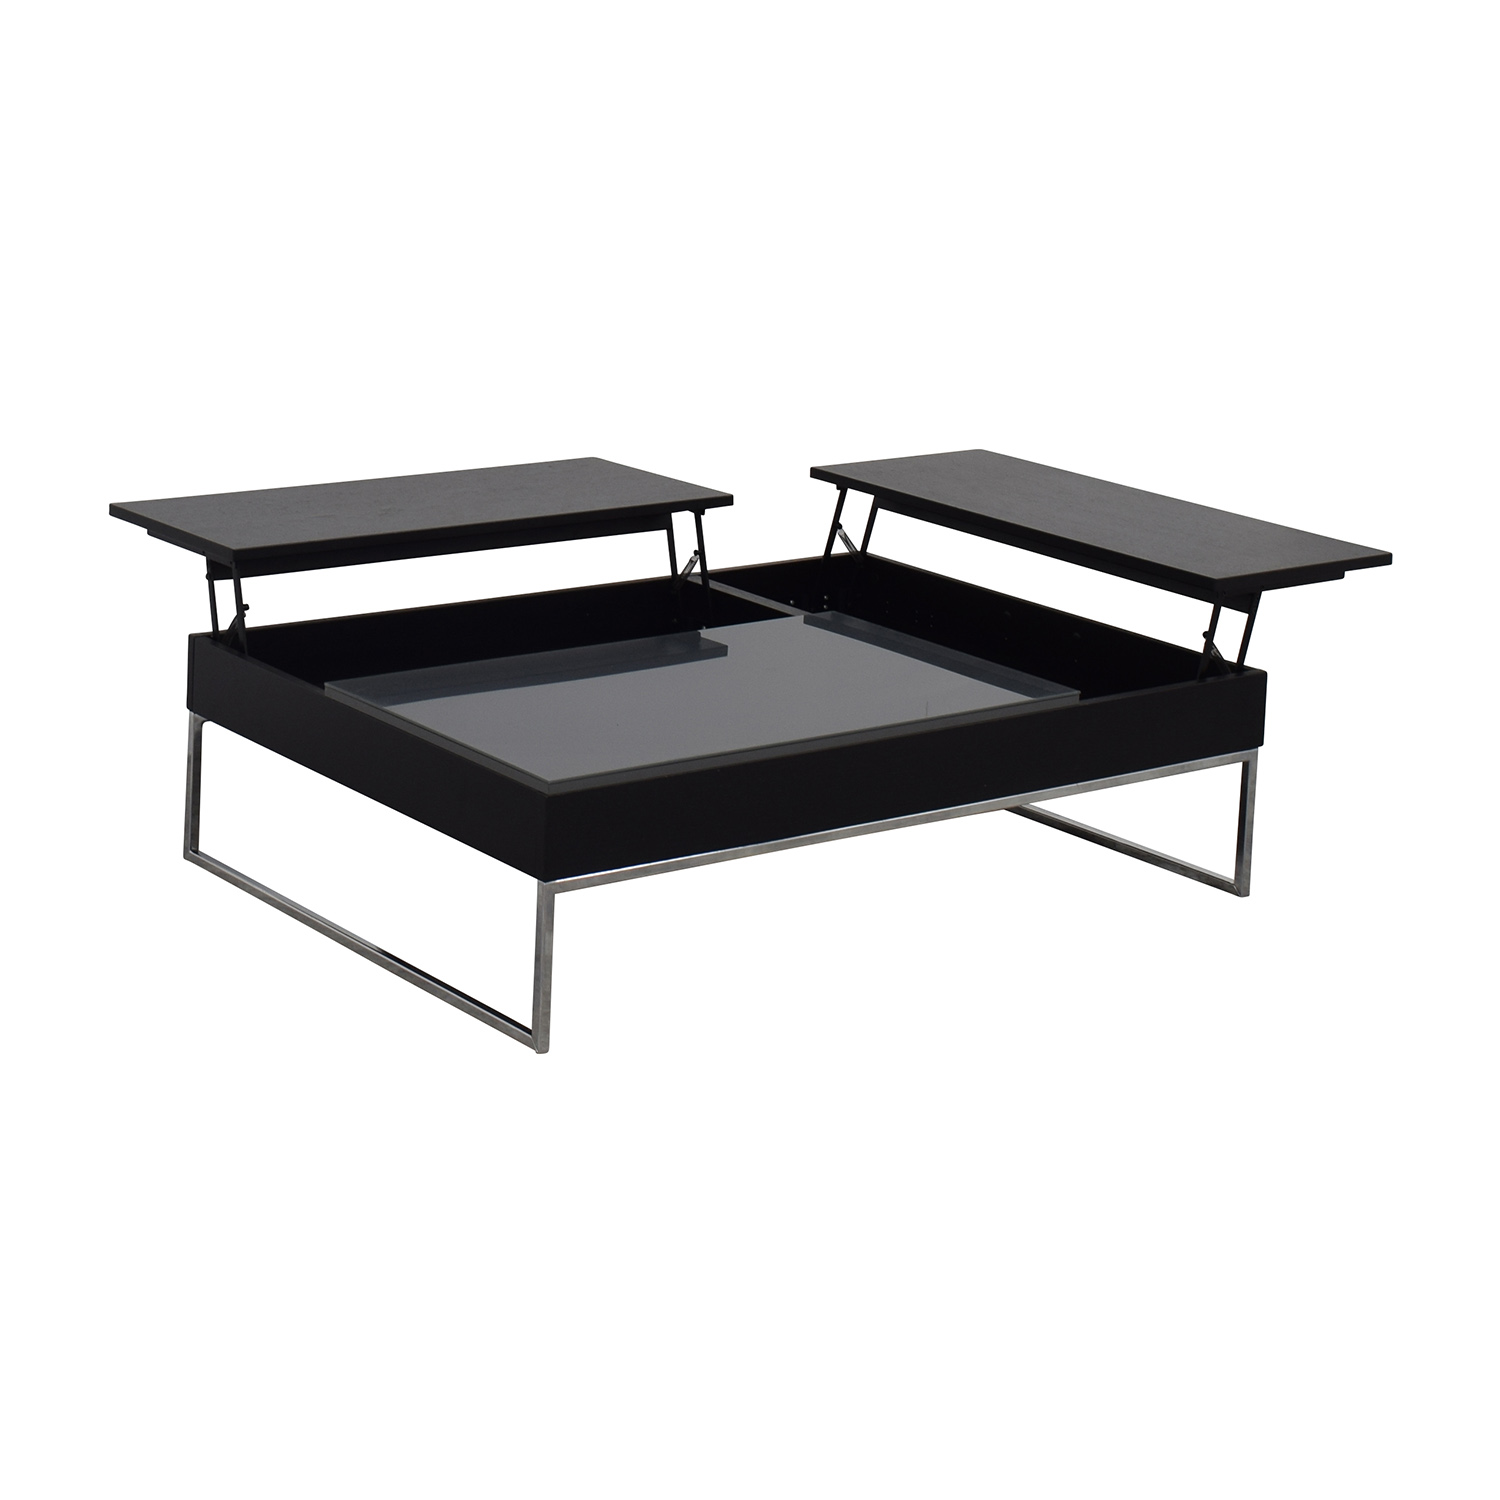 77 off boconcept boconcept chiva storage coffee table tables. Black Bedroom Furniture Sets. Home Design Ideas